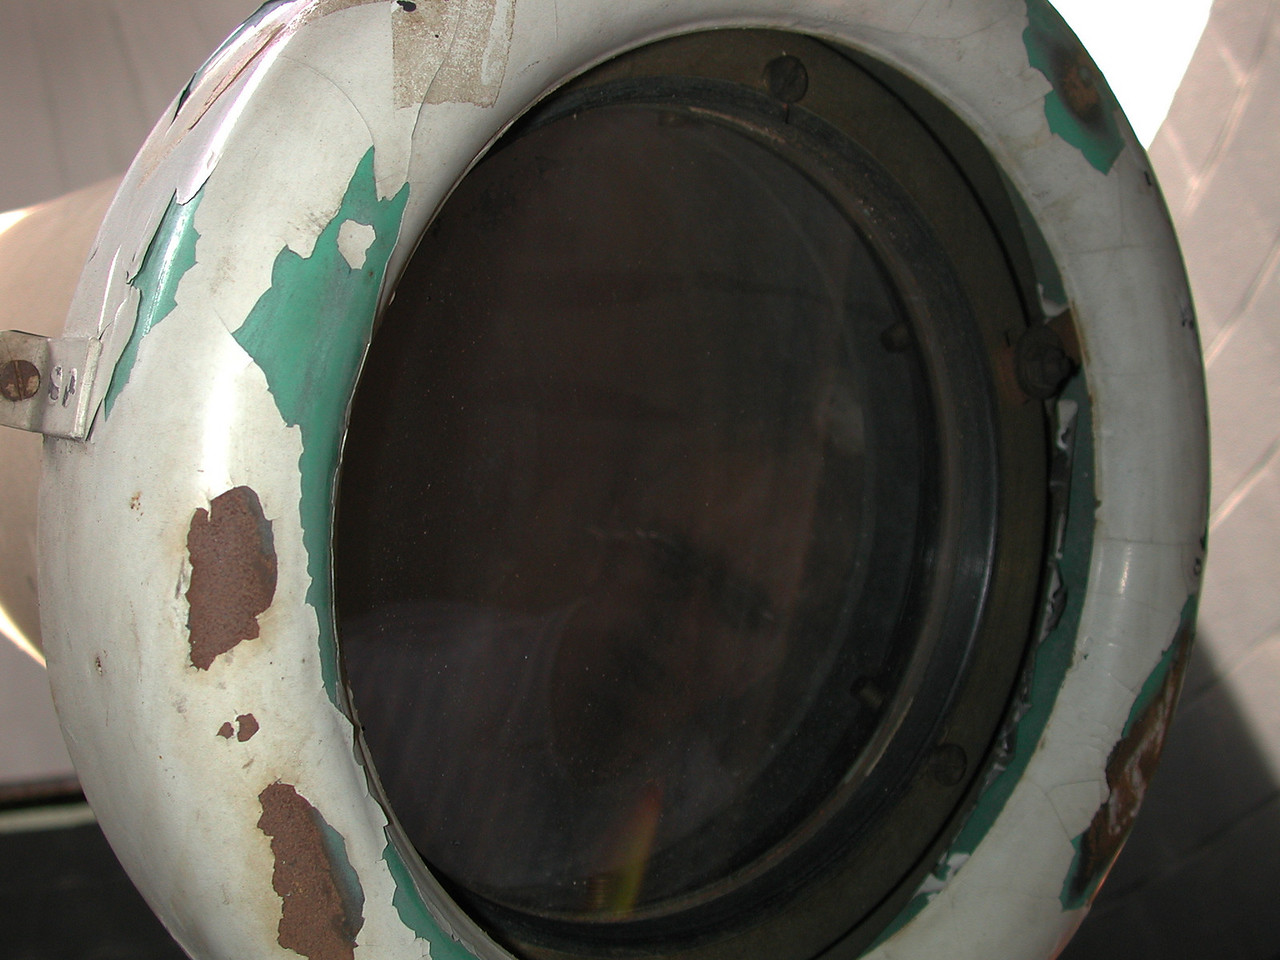 As we can see the original color of the telescope was green. The lens appears to be in great condition!!